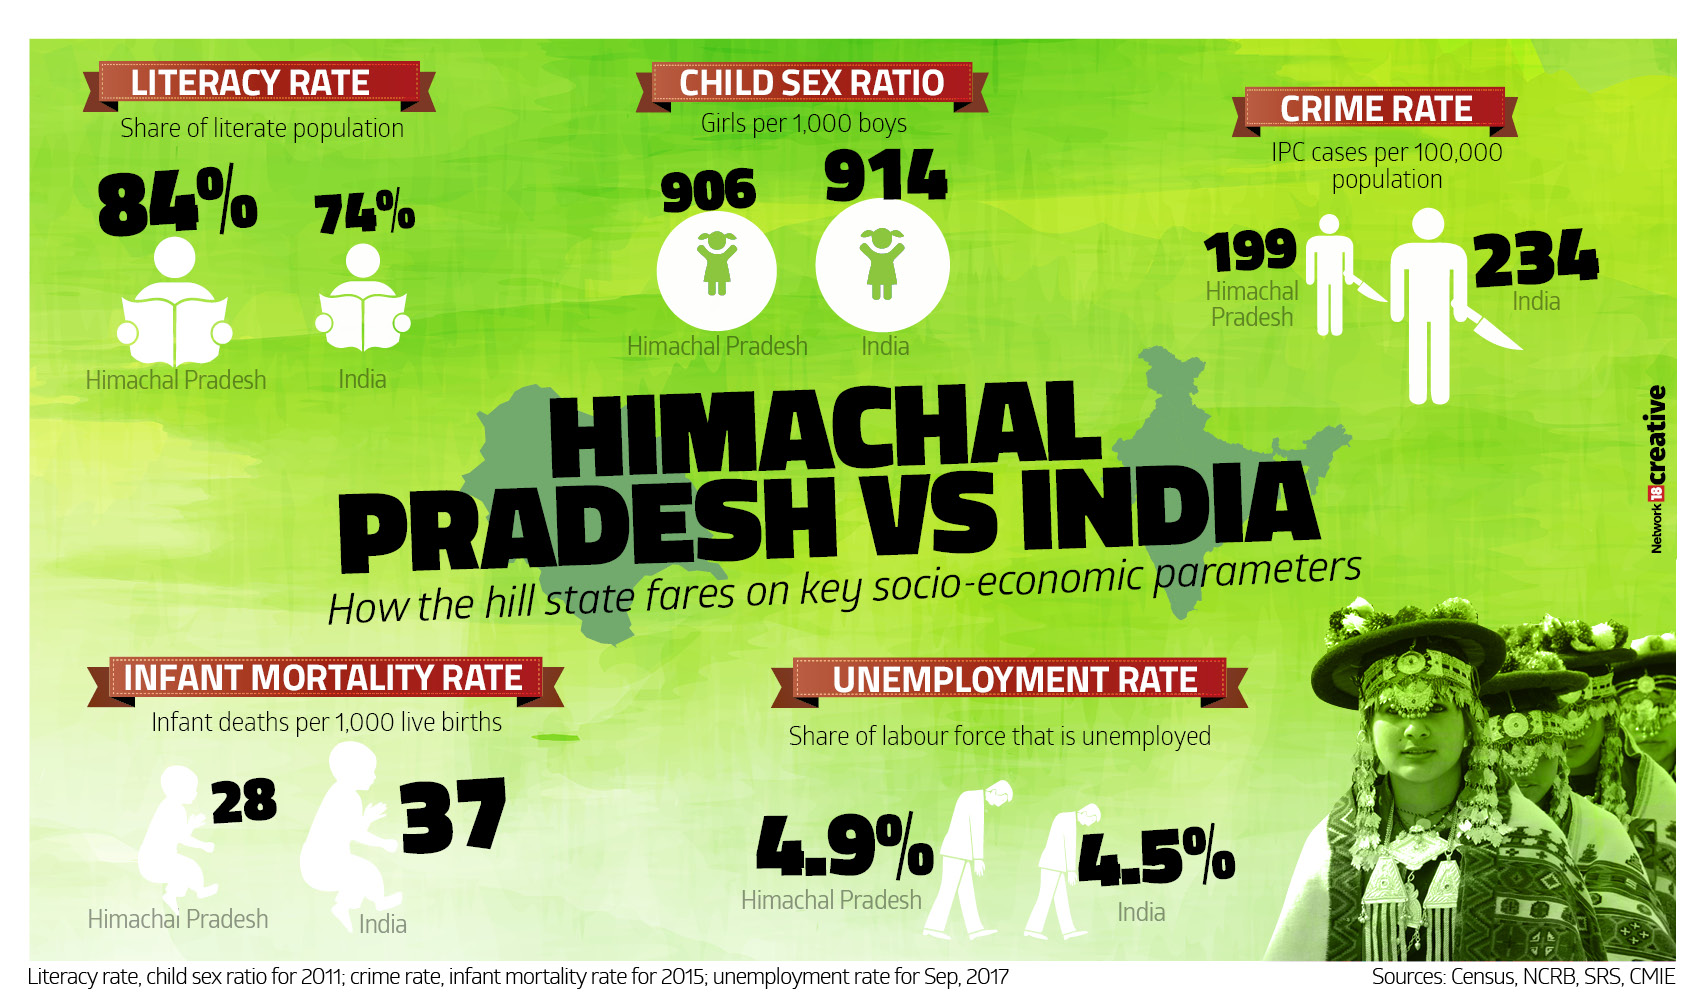 Himachal Pradesh vs India in numbers